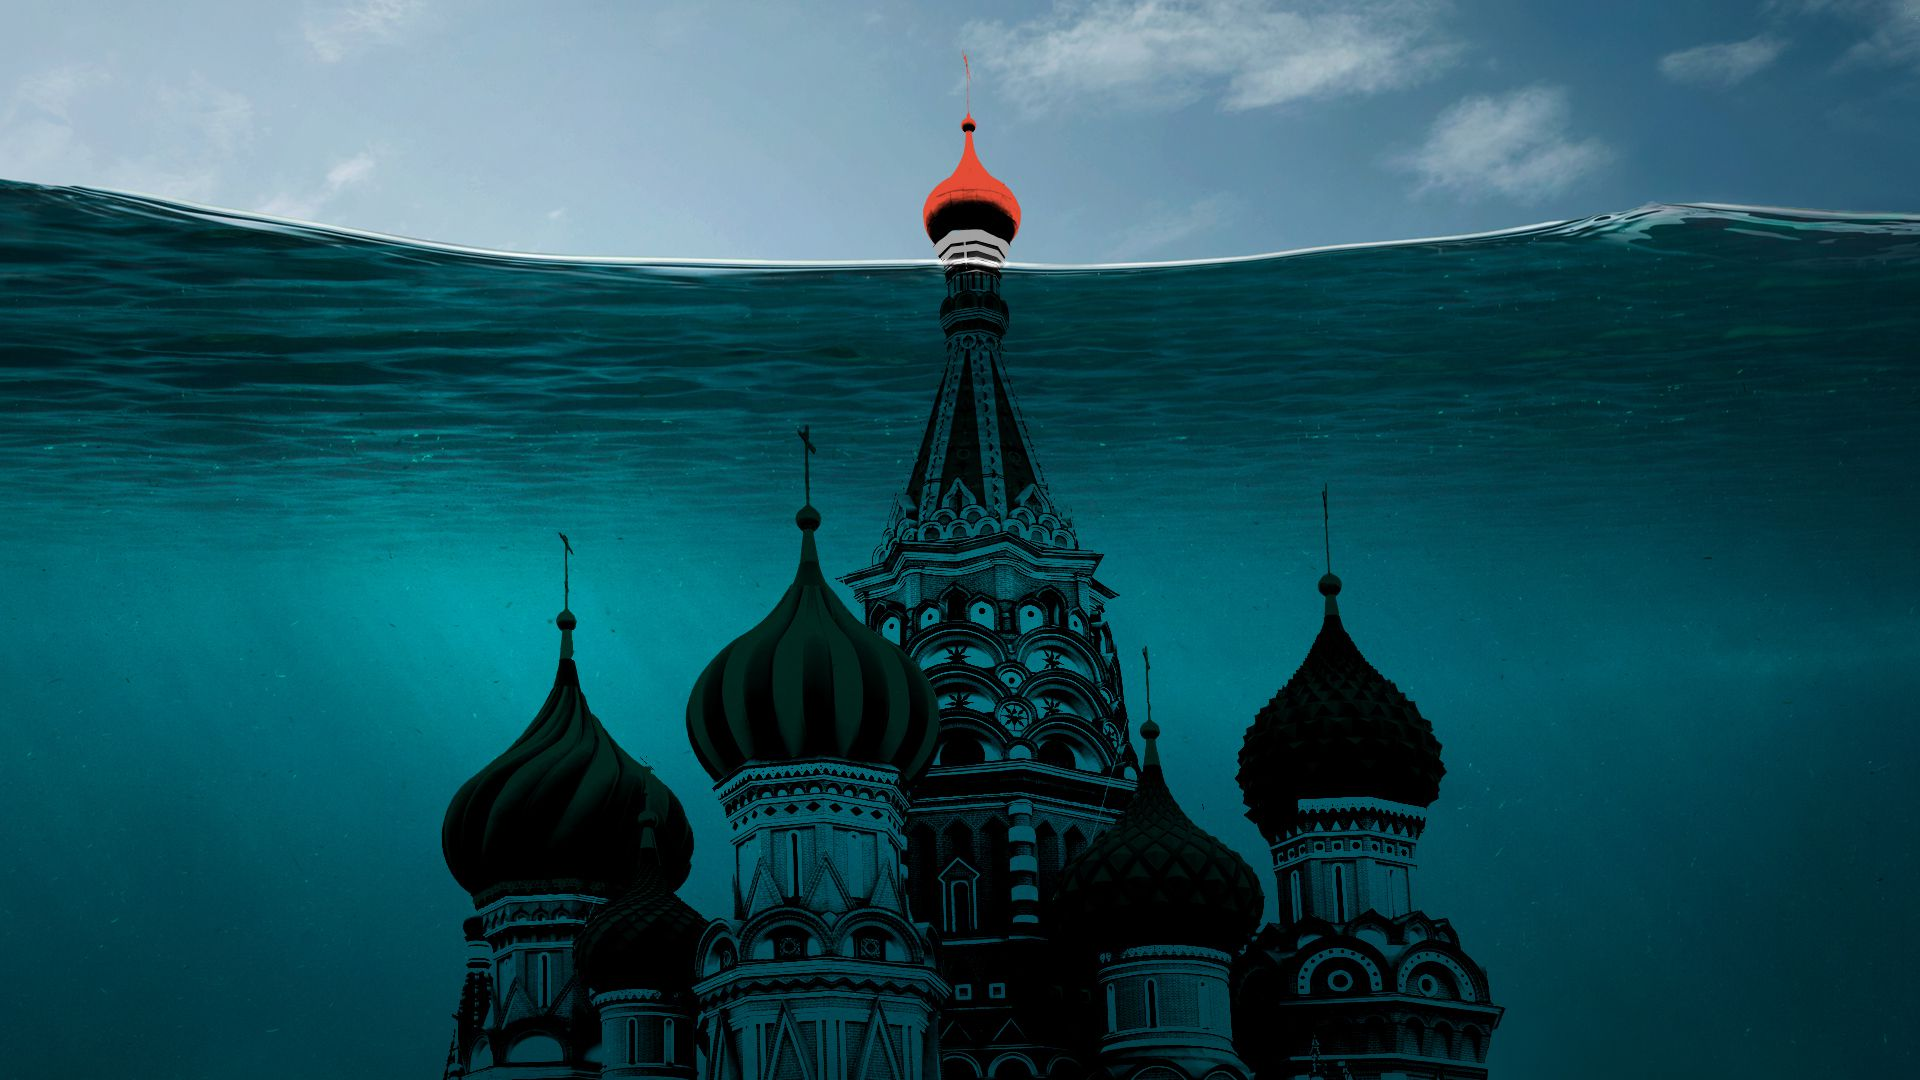 The tip of a Kremlin palace is visible, but the rest is underwater